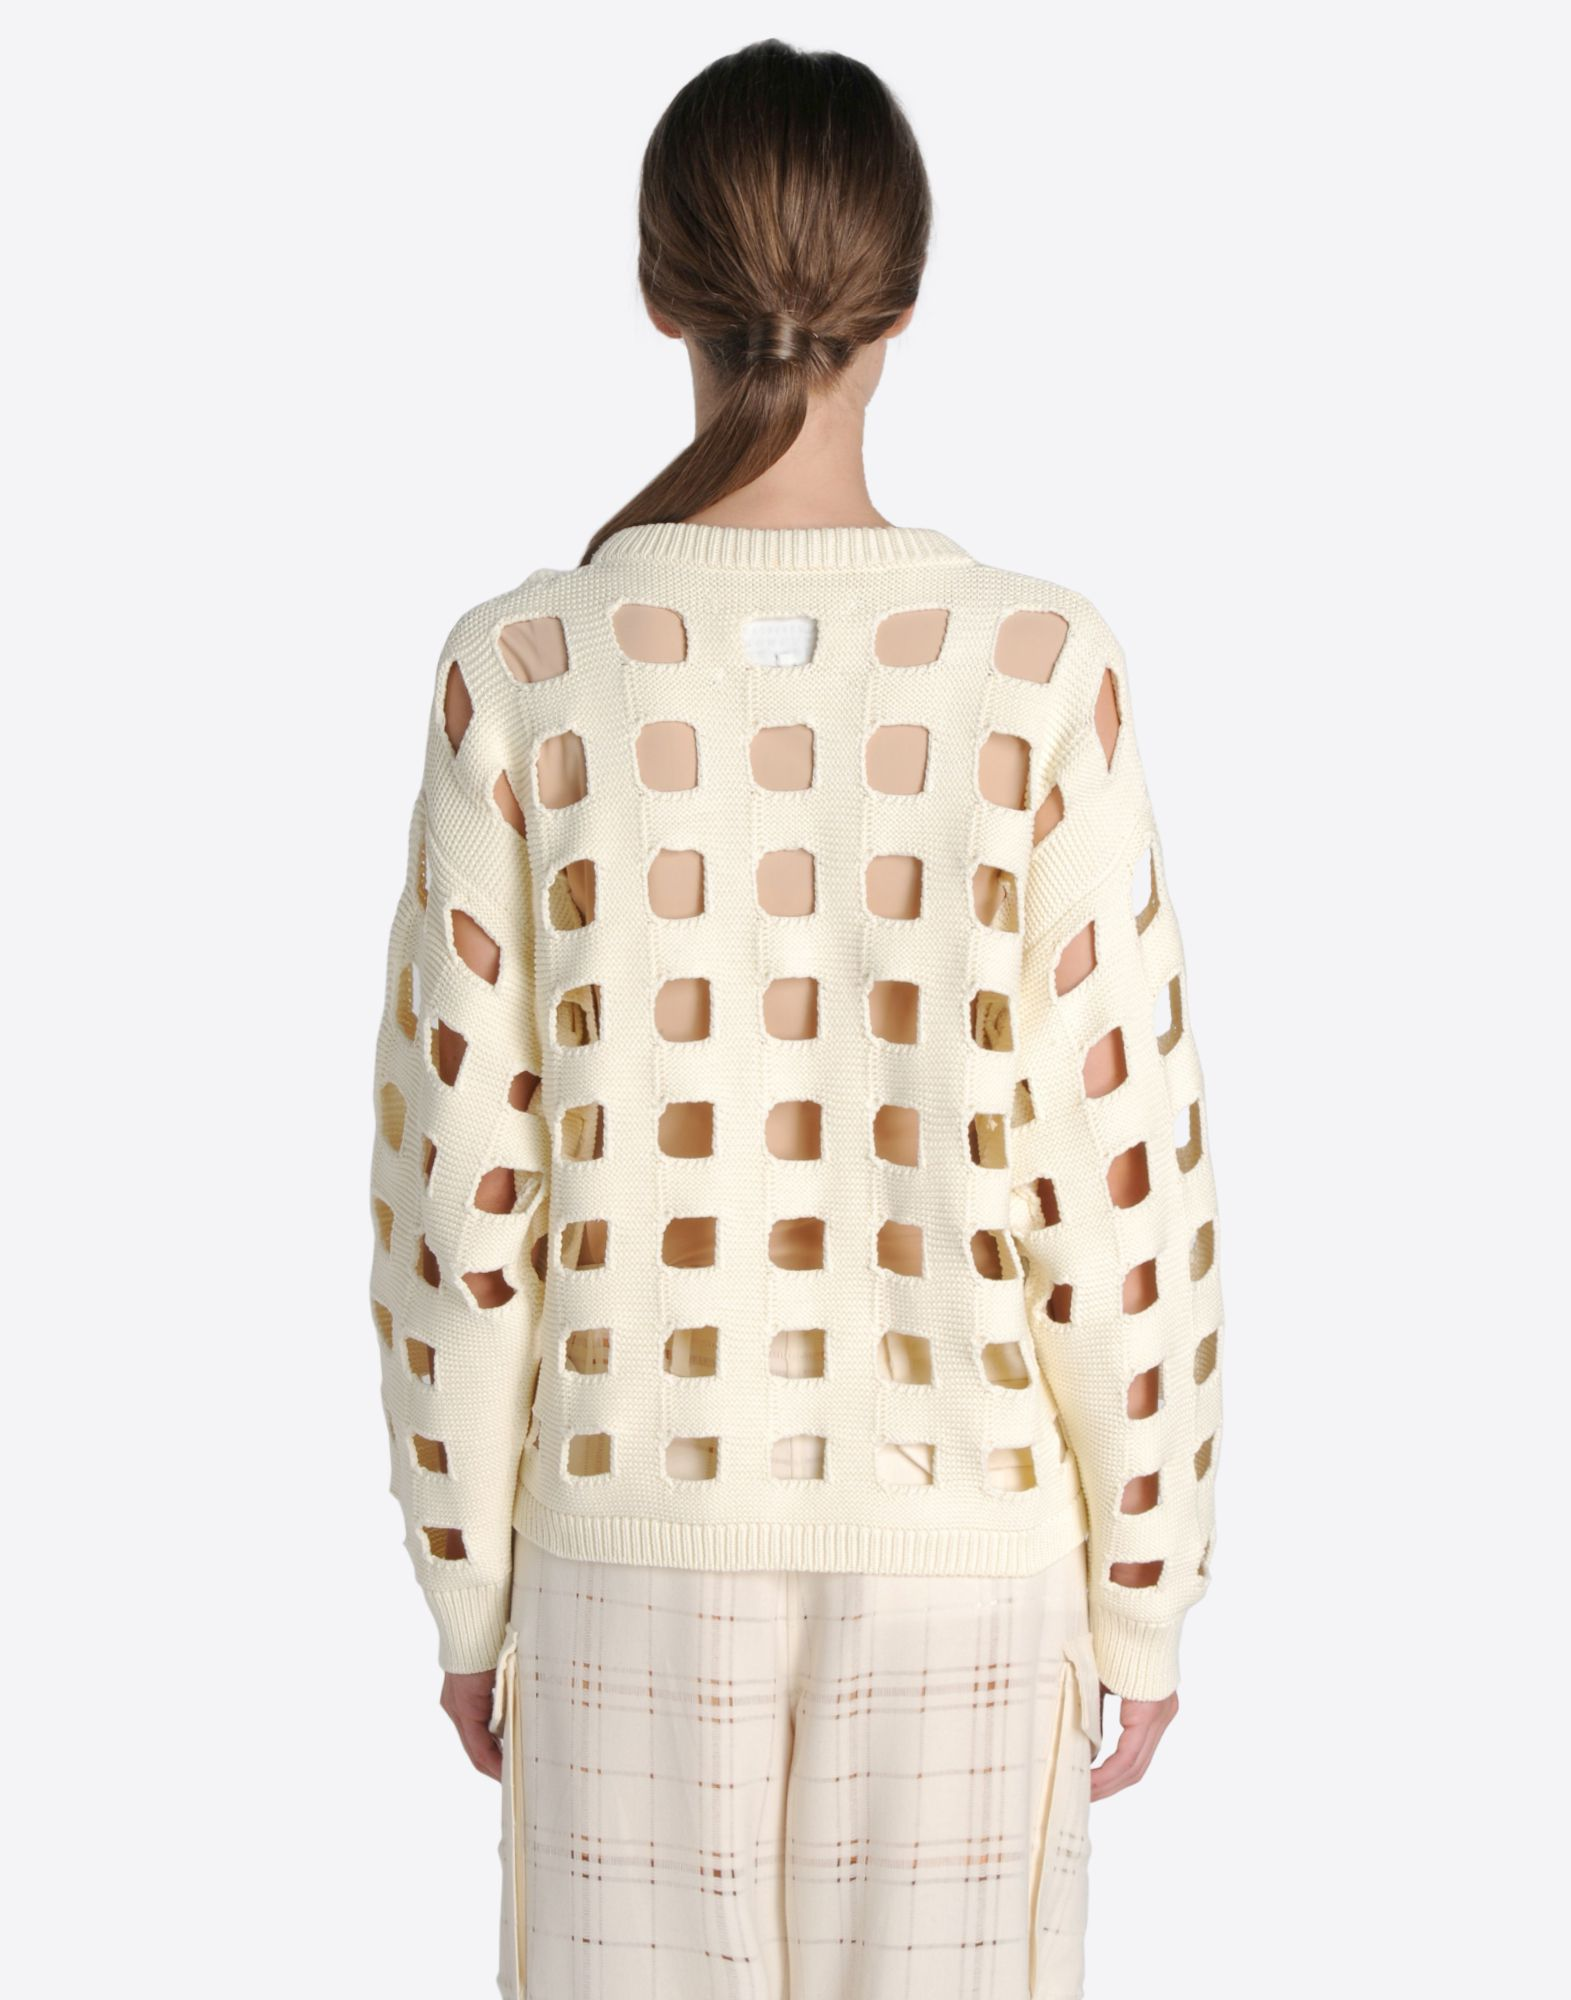 MAISON MARGIELA 1 Knit sweater with cut-out checks Long sleeve sweater Woman d